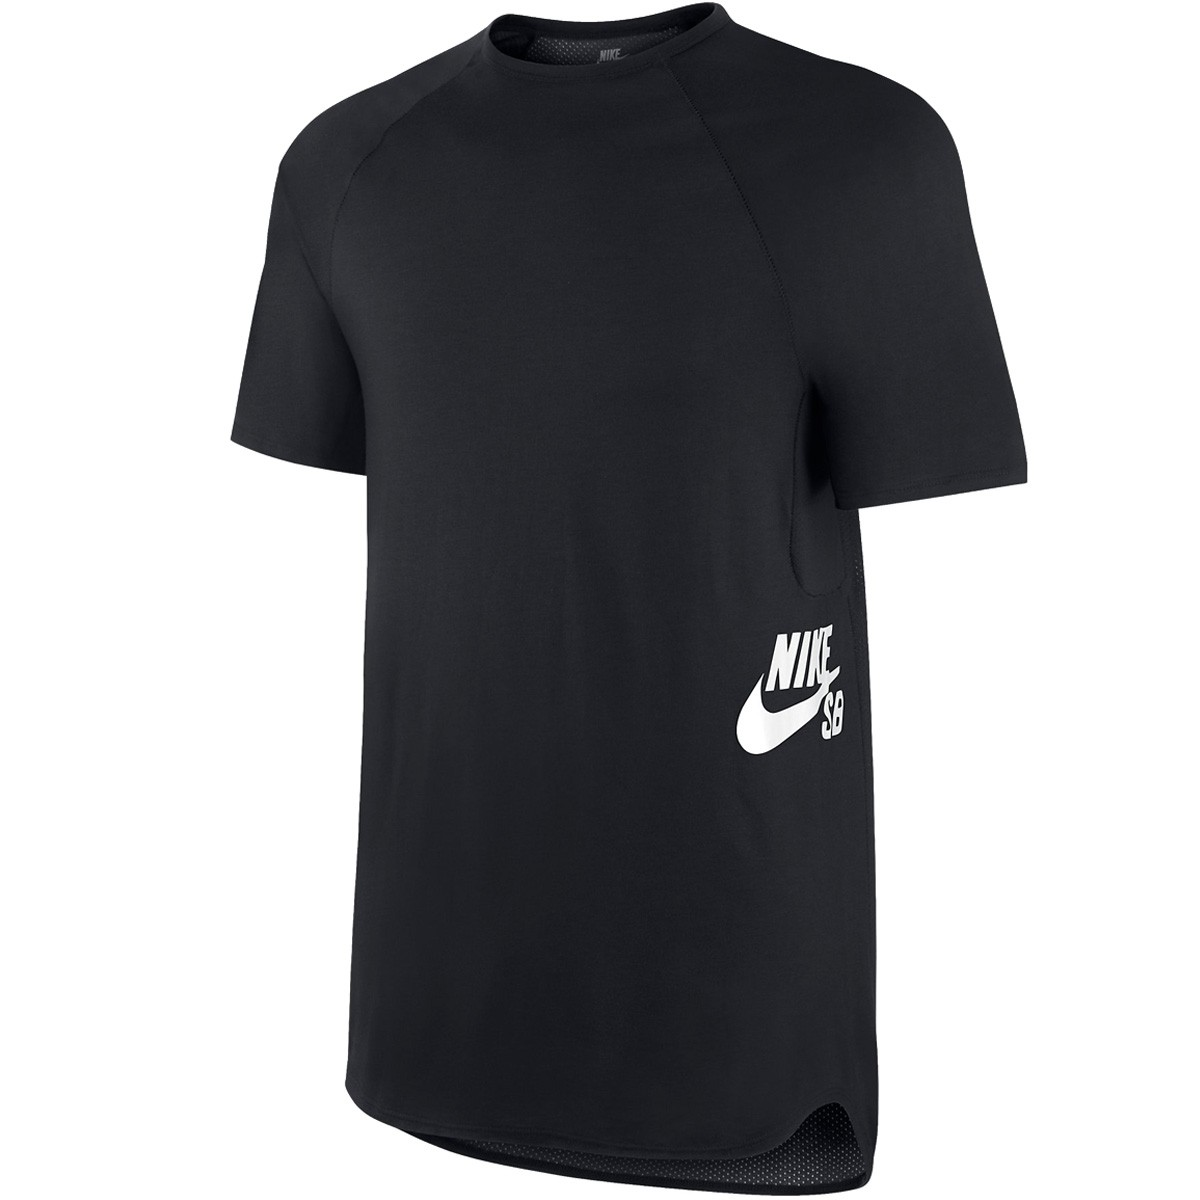 Nike Skyline Dri Fit T-Shirt - Black/White